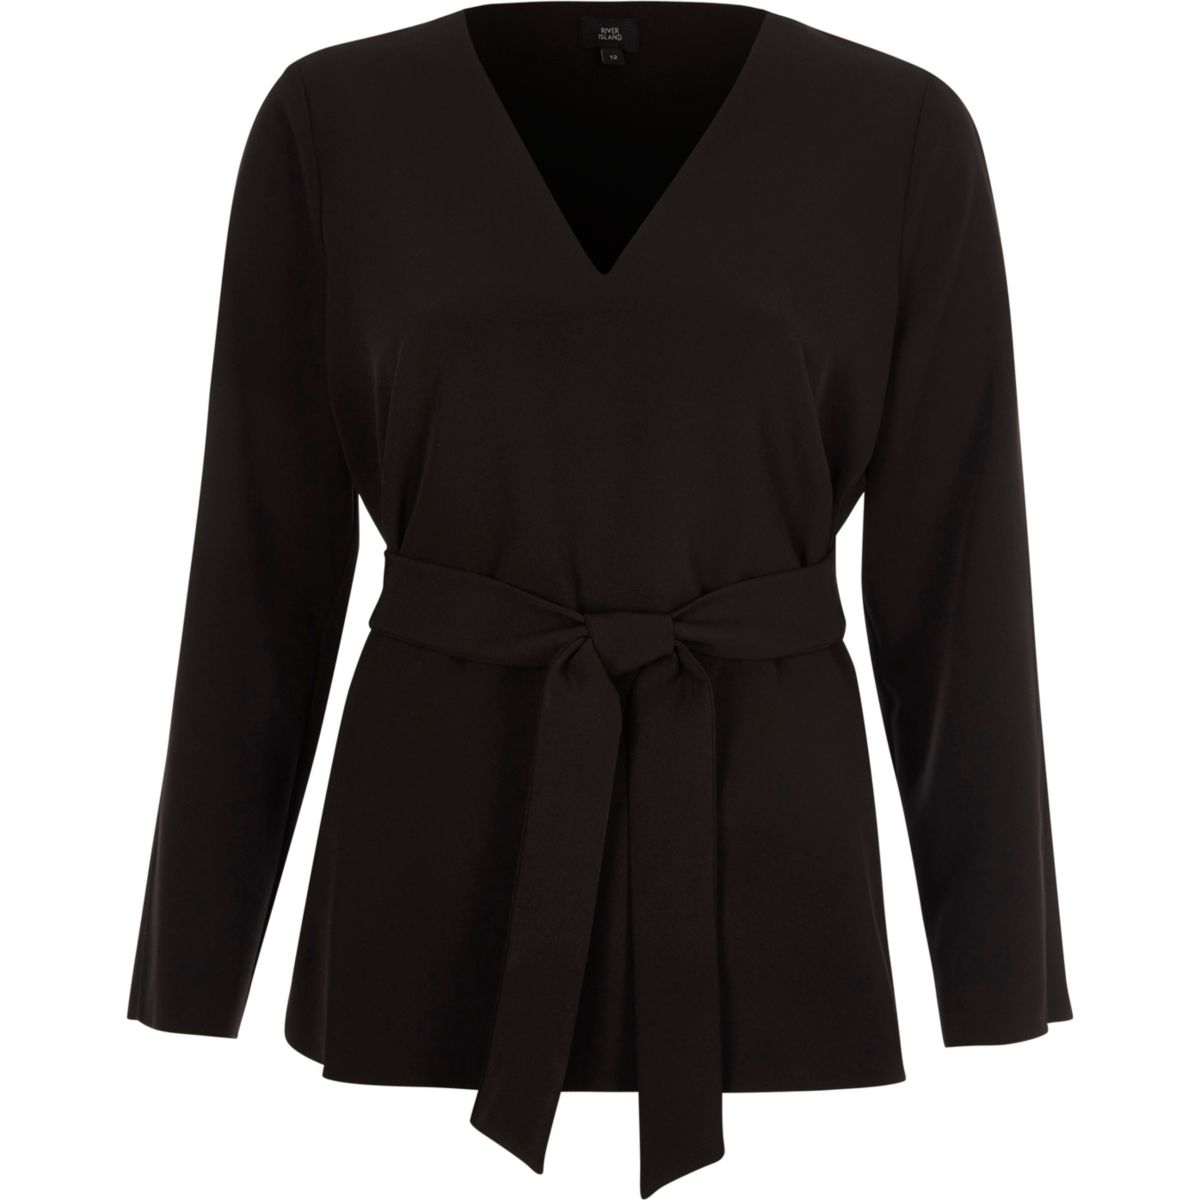 Black long split sleeve tie waist top